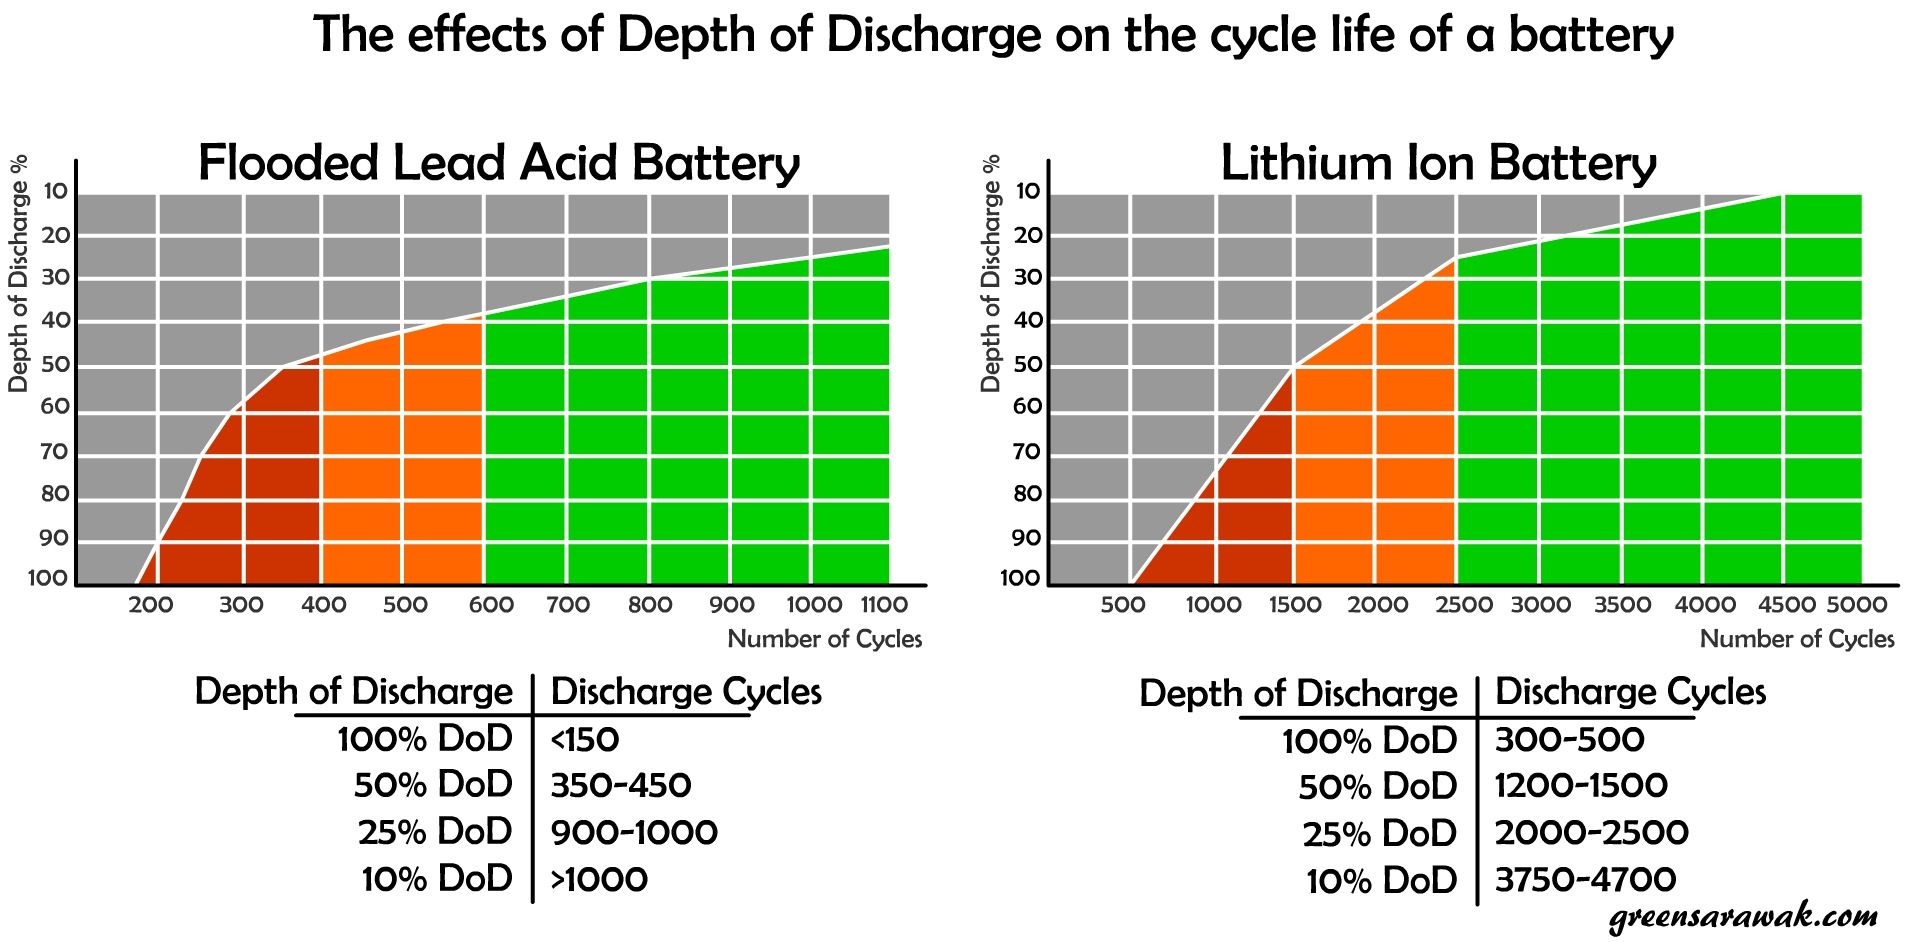 Going Solar Chapter 15 Know Your Battery Green Sarawak Lead Acid Diagram An Illustration Of Example Cycle Life A Flood Vs Lithium Ion And The Effect Depth Discharge On